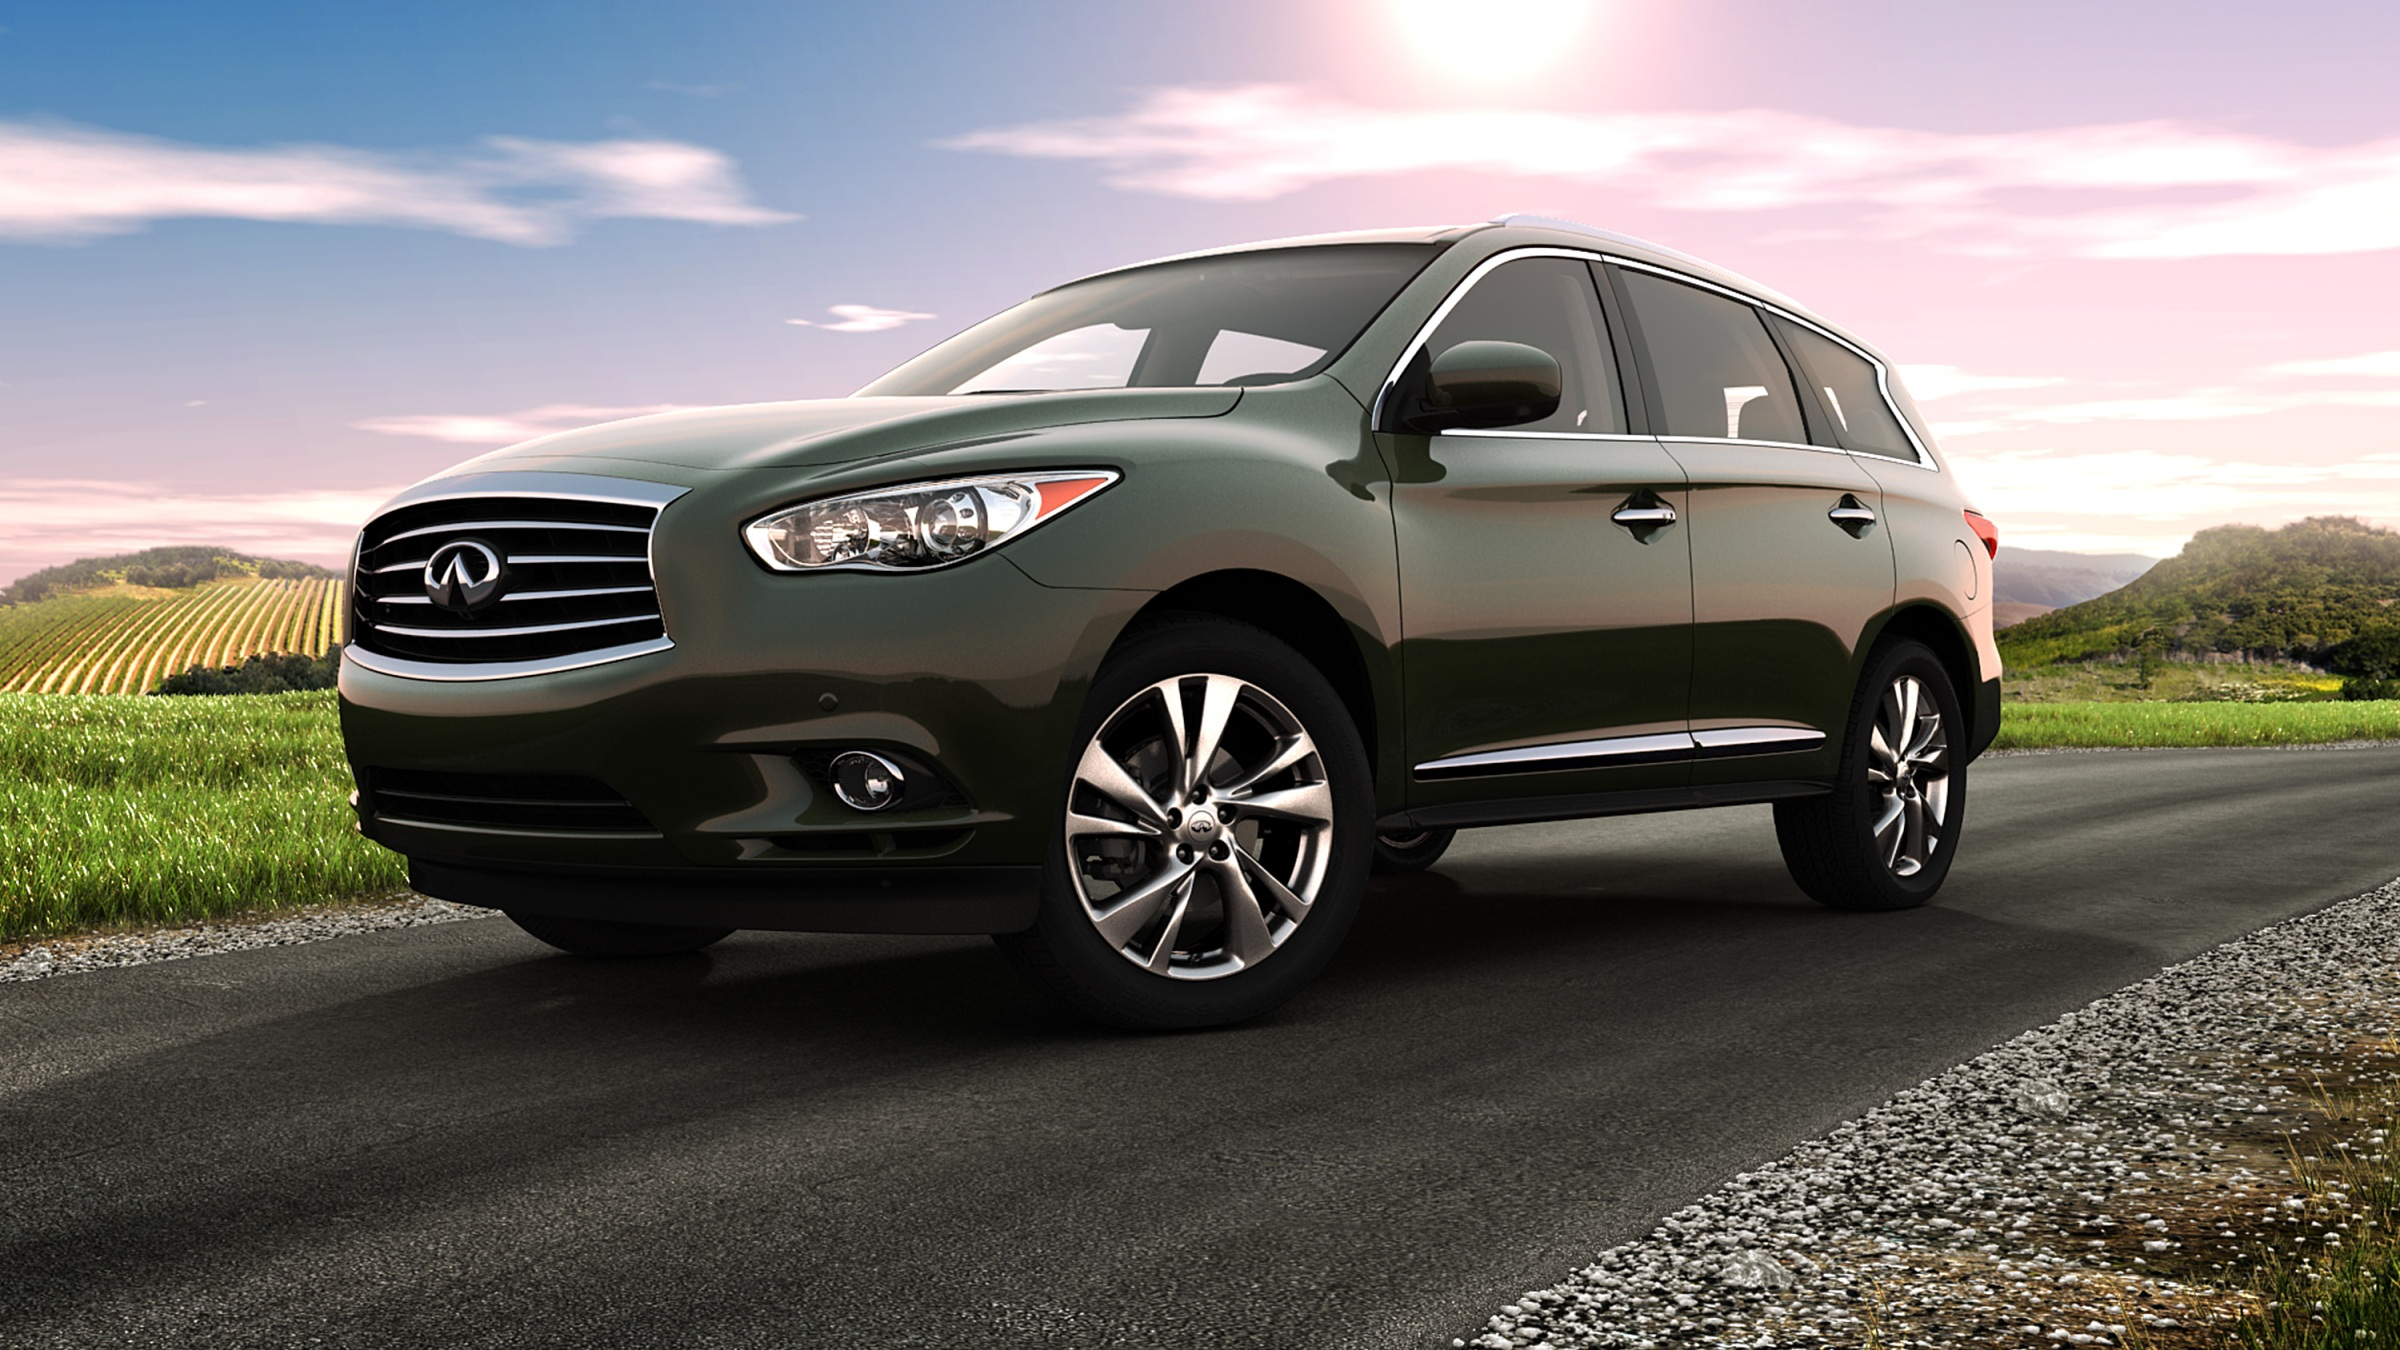 ... 2015 Infiniti QX60 | South Florida Auto Leasing | New Car Leasing .